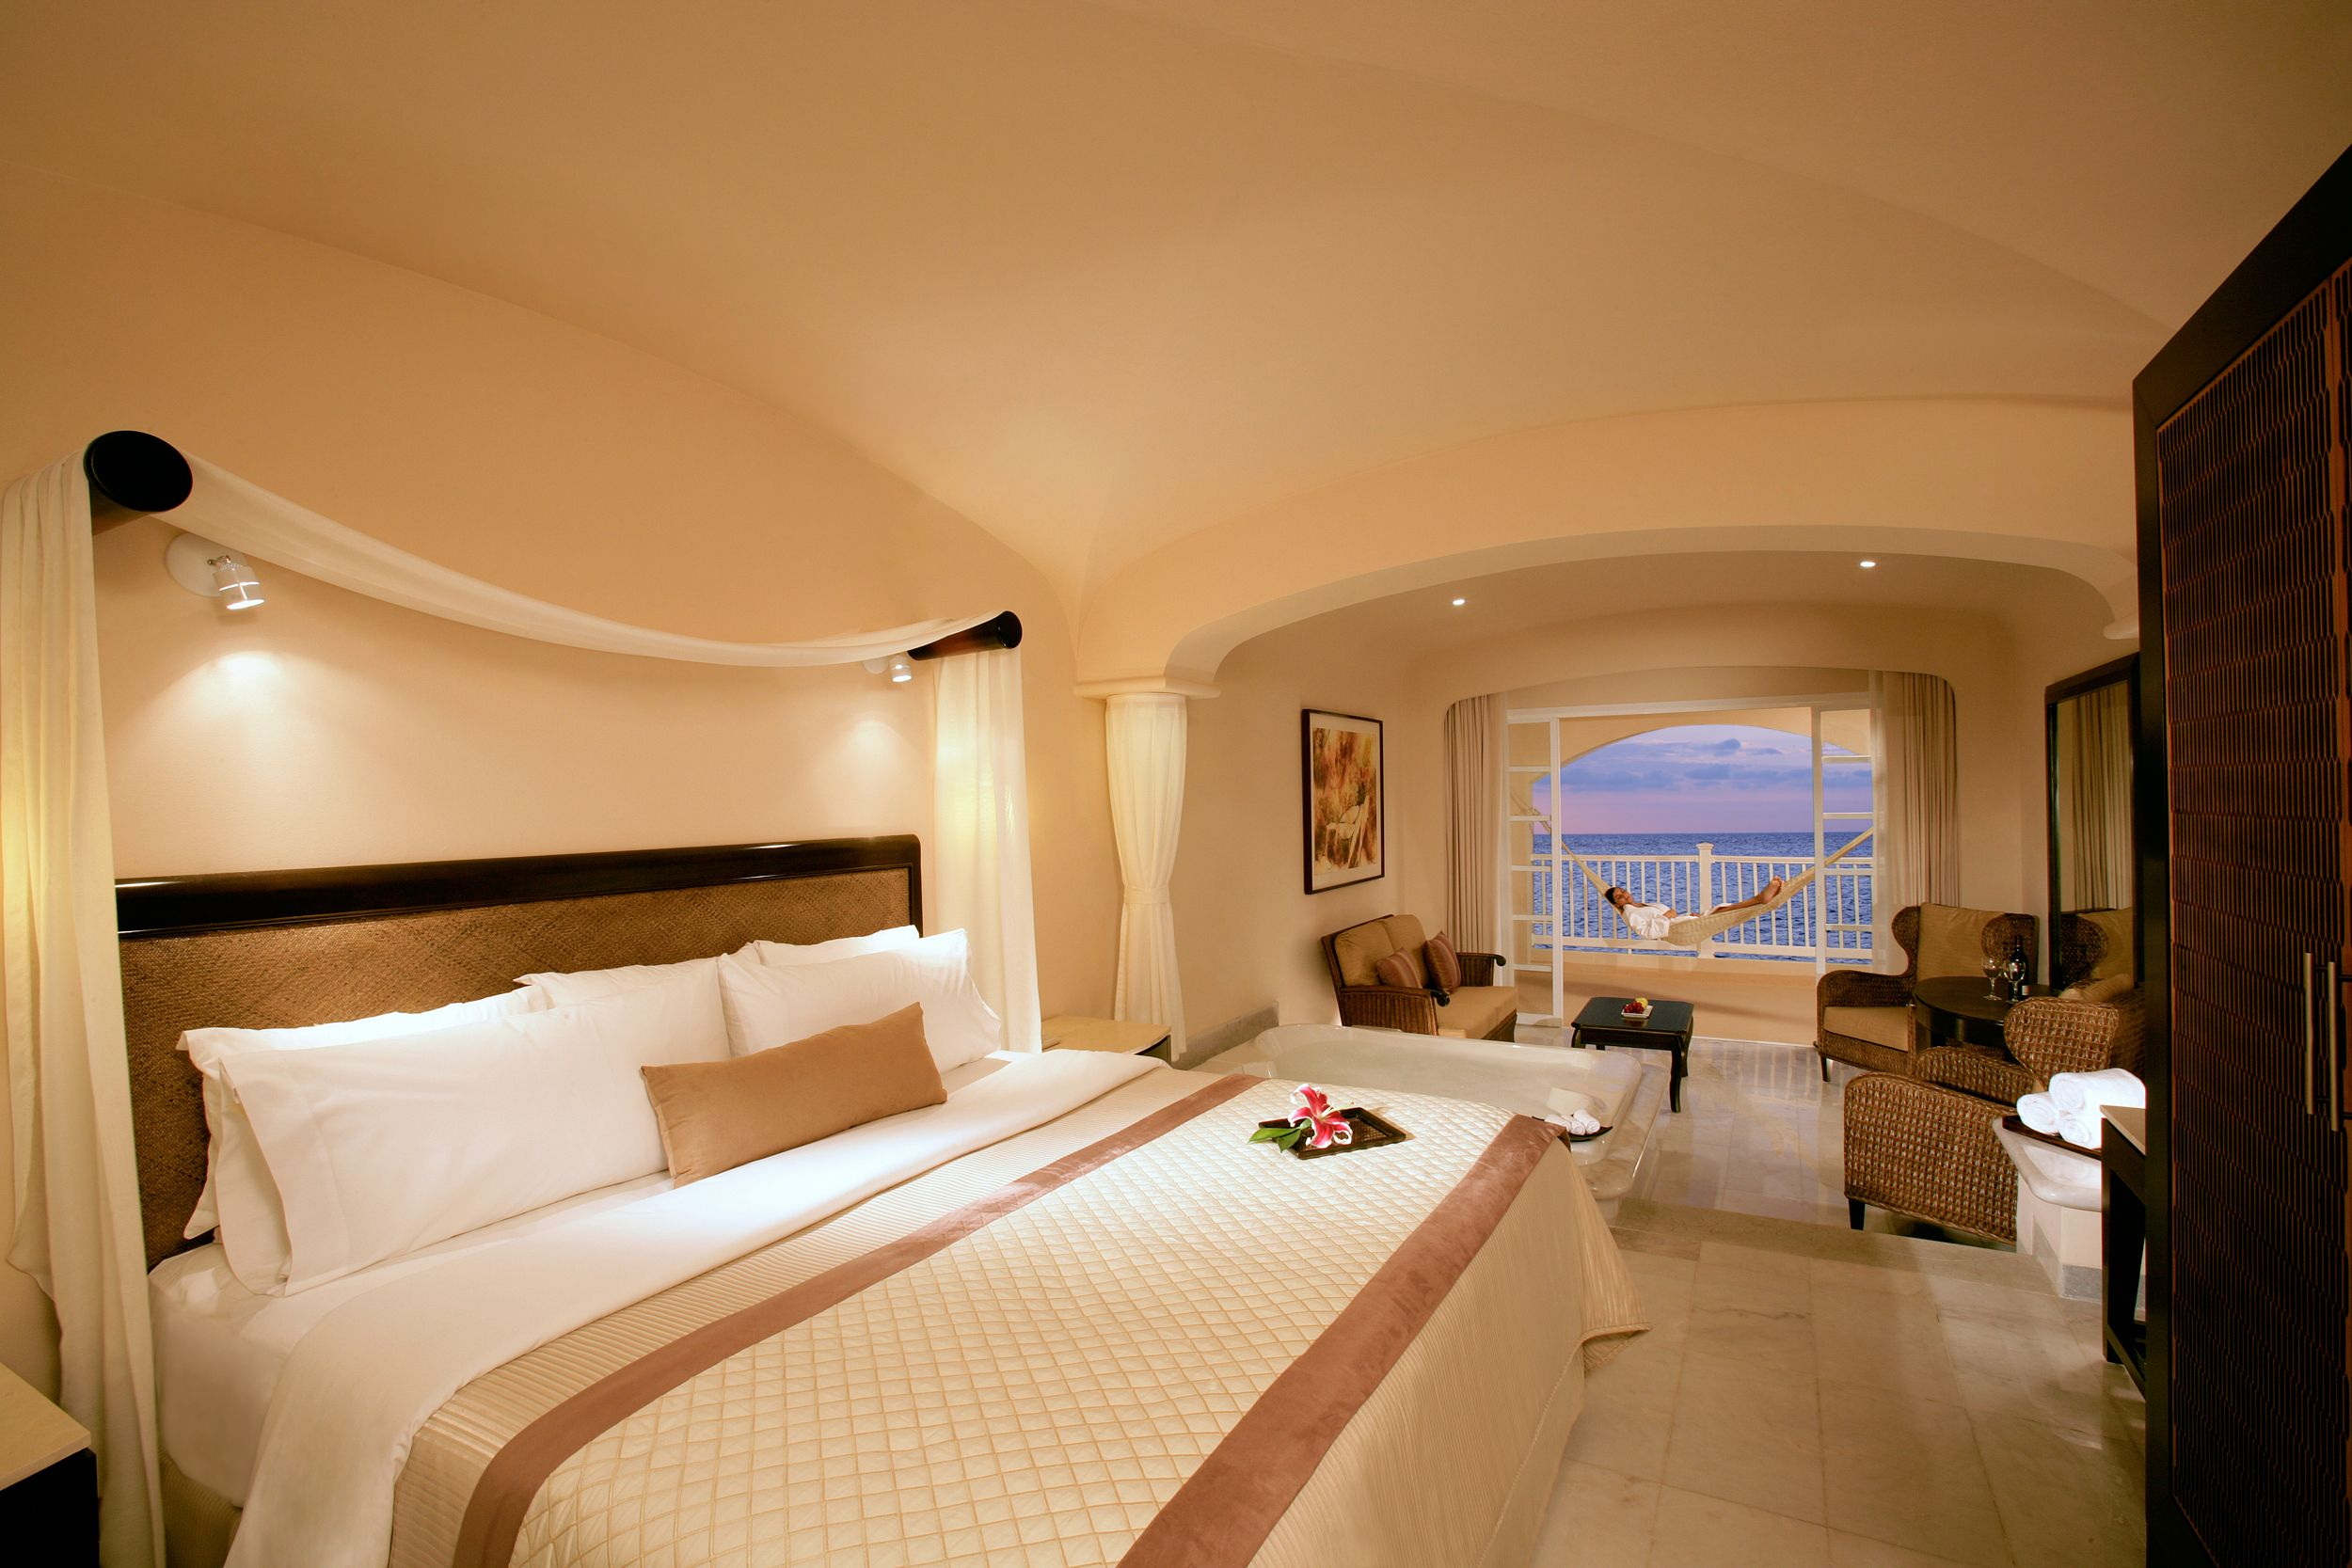 View of a Junior Suite at the Cozumel Palace